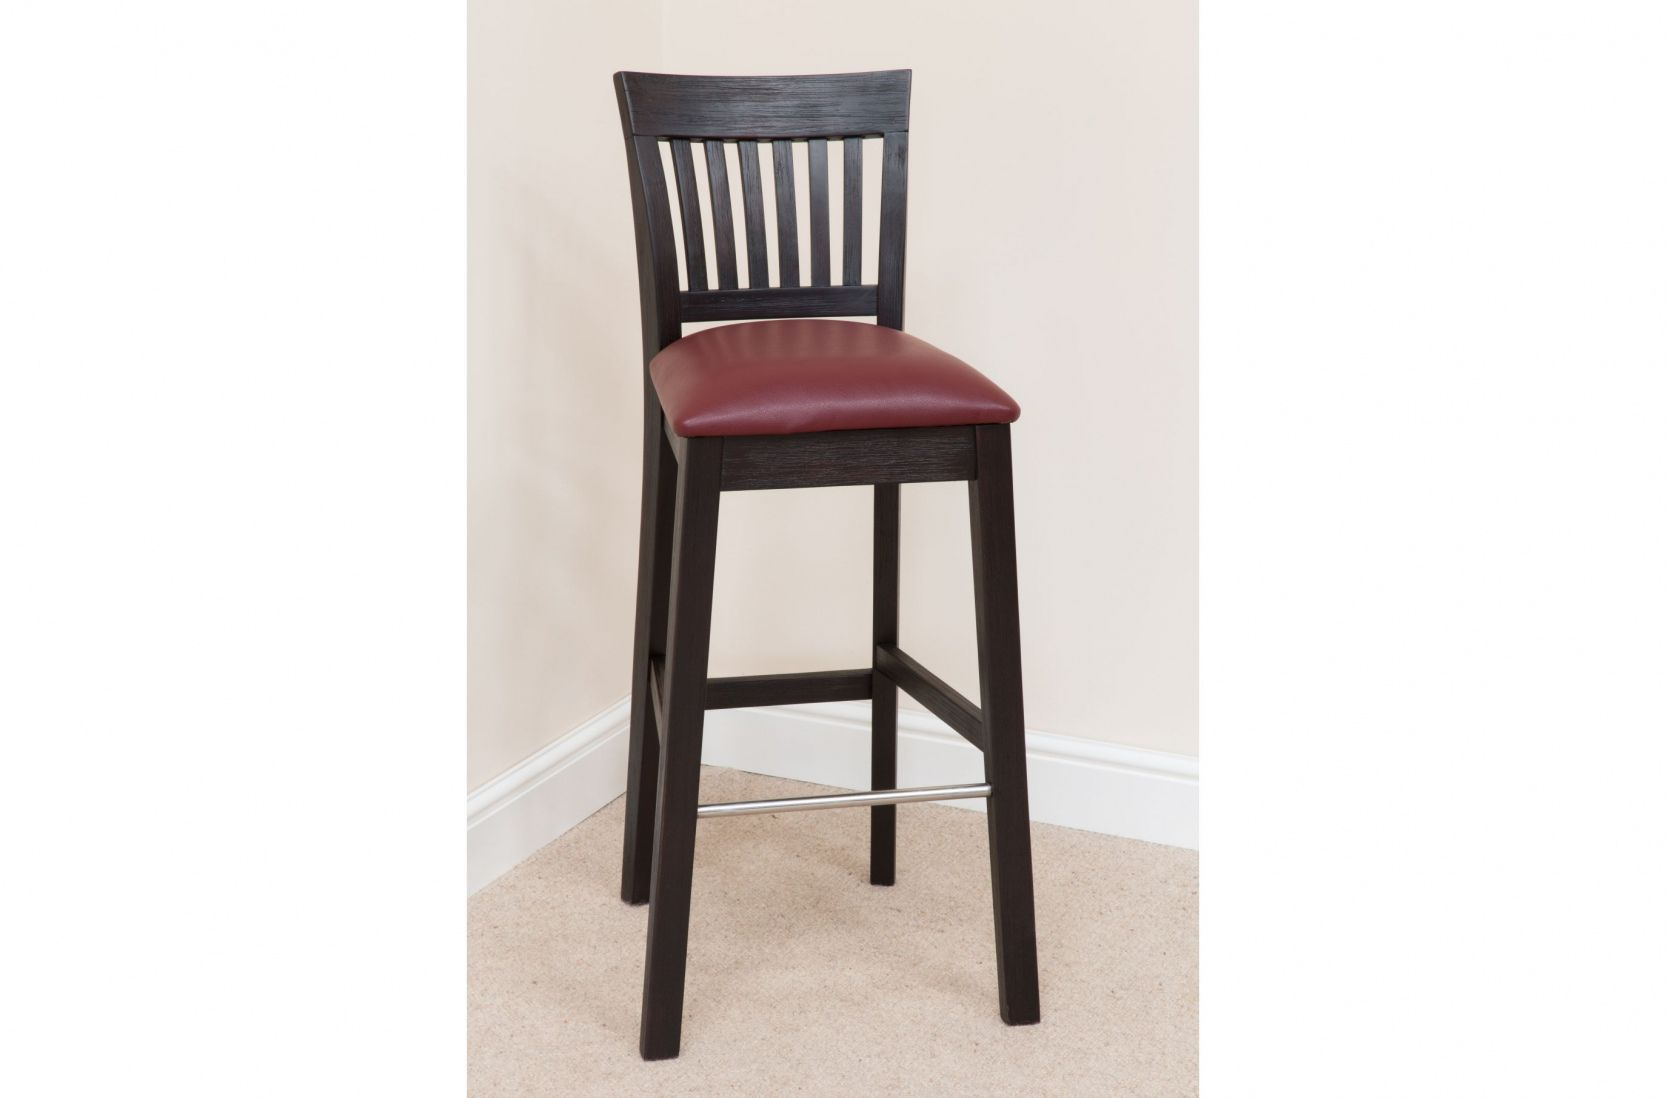 2019 Extra Tall Bar Stools 36 Inch Seat Height Modern Affordable Furniture Check More At Http Evildaysoflu Bar Stools Wooden Kitchen Stools Wood Bar Stools